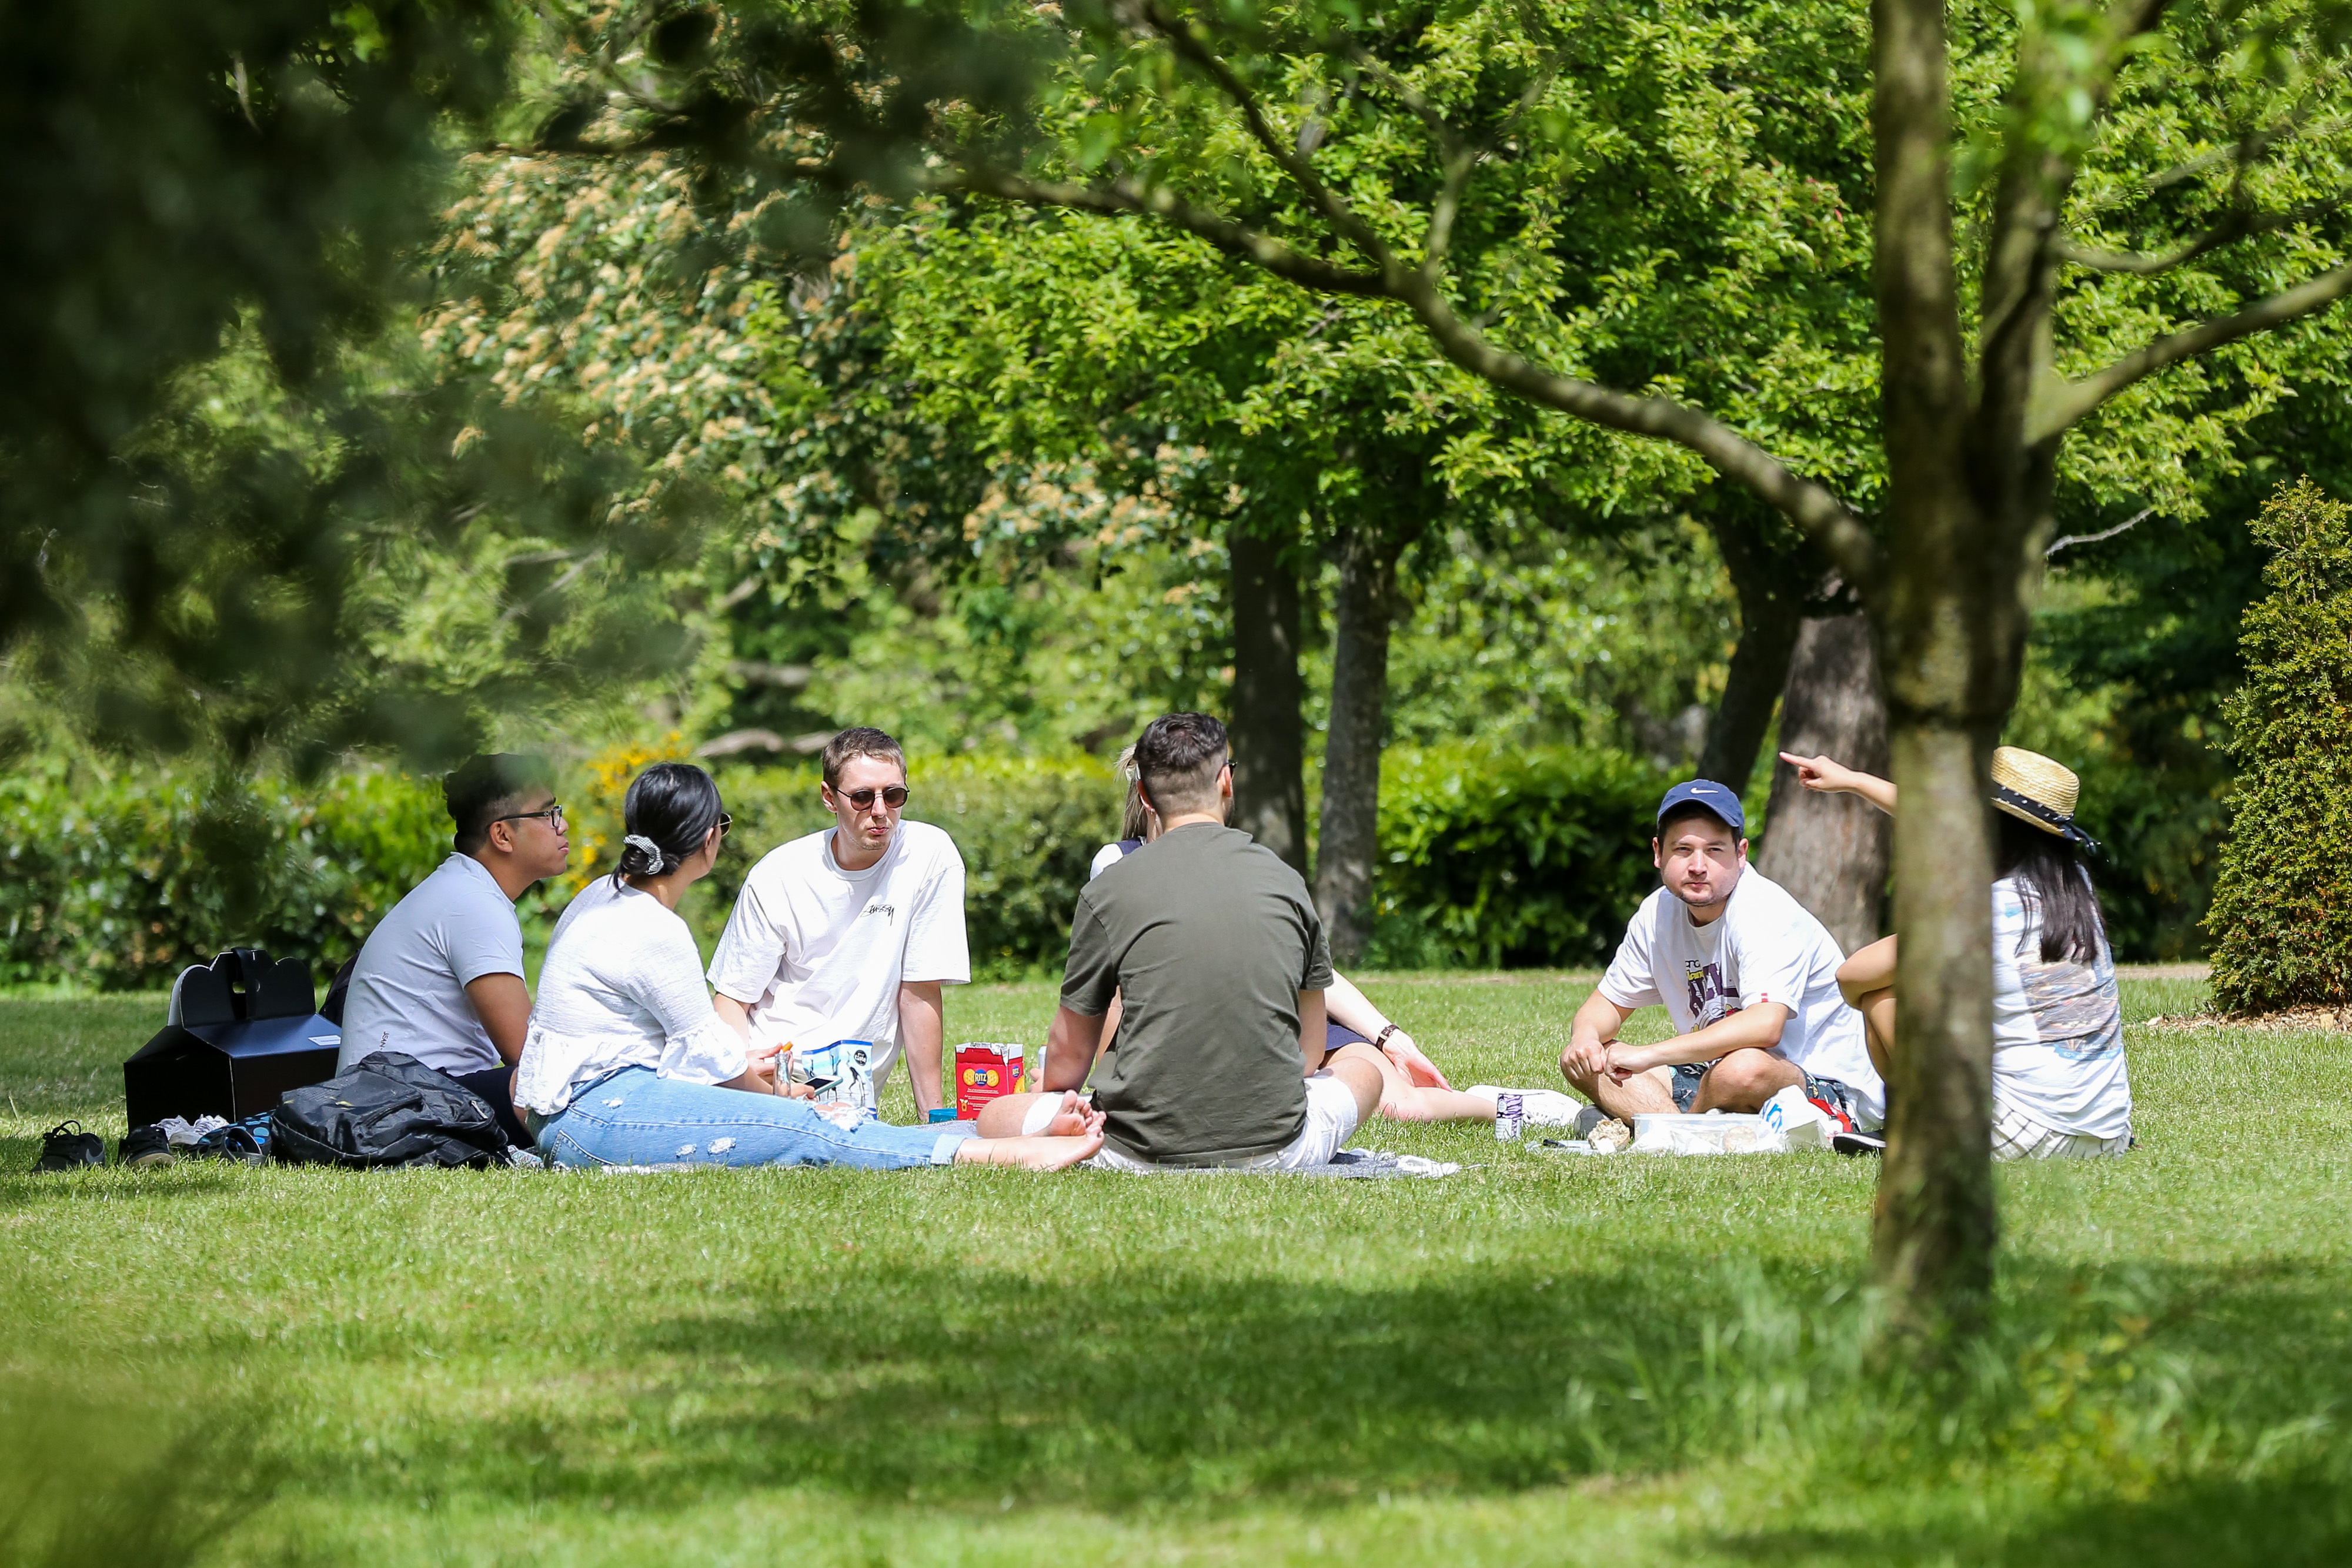 People enjoying the warm weather in Finsbury park during the COVID-19 lockdown as they observe social distancing. The government has relaxed the restrictions on coronavirus lockdown to allowing people to spend more time outside. (Photo by Steve Taylor / SOPA Images/Sipa USA)